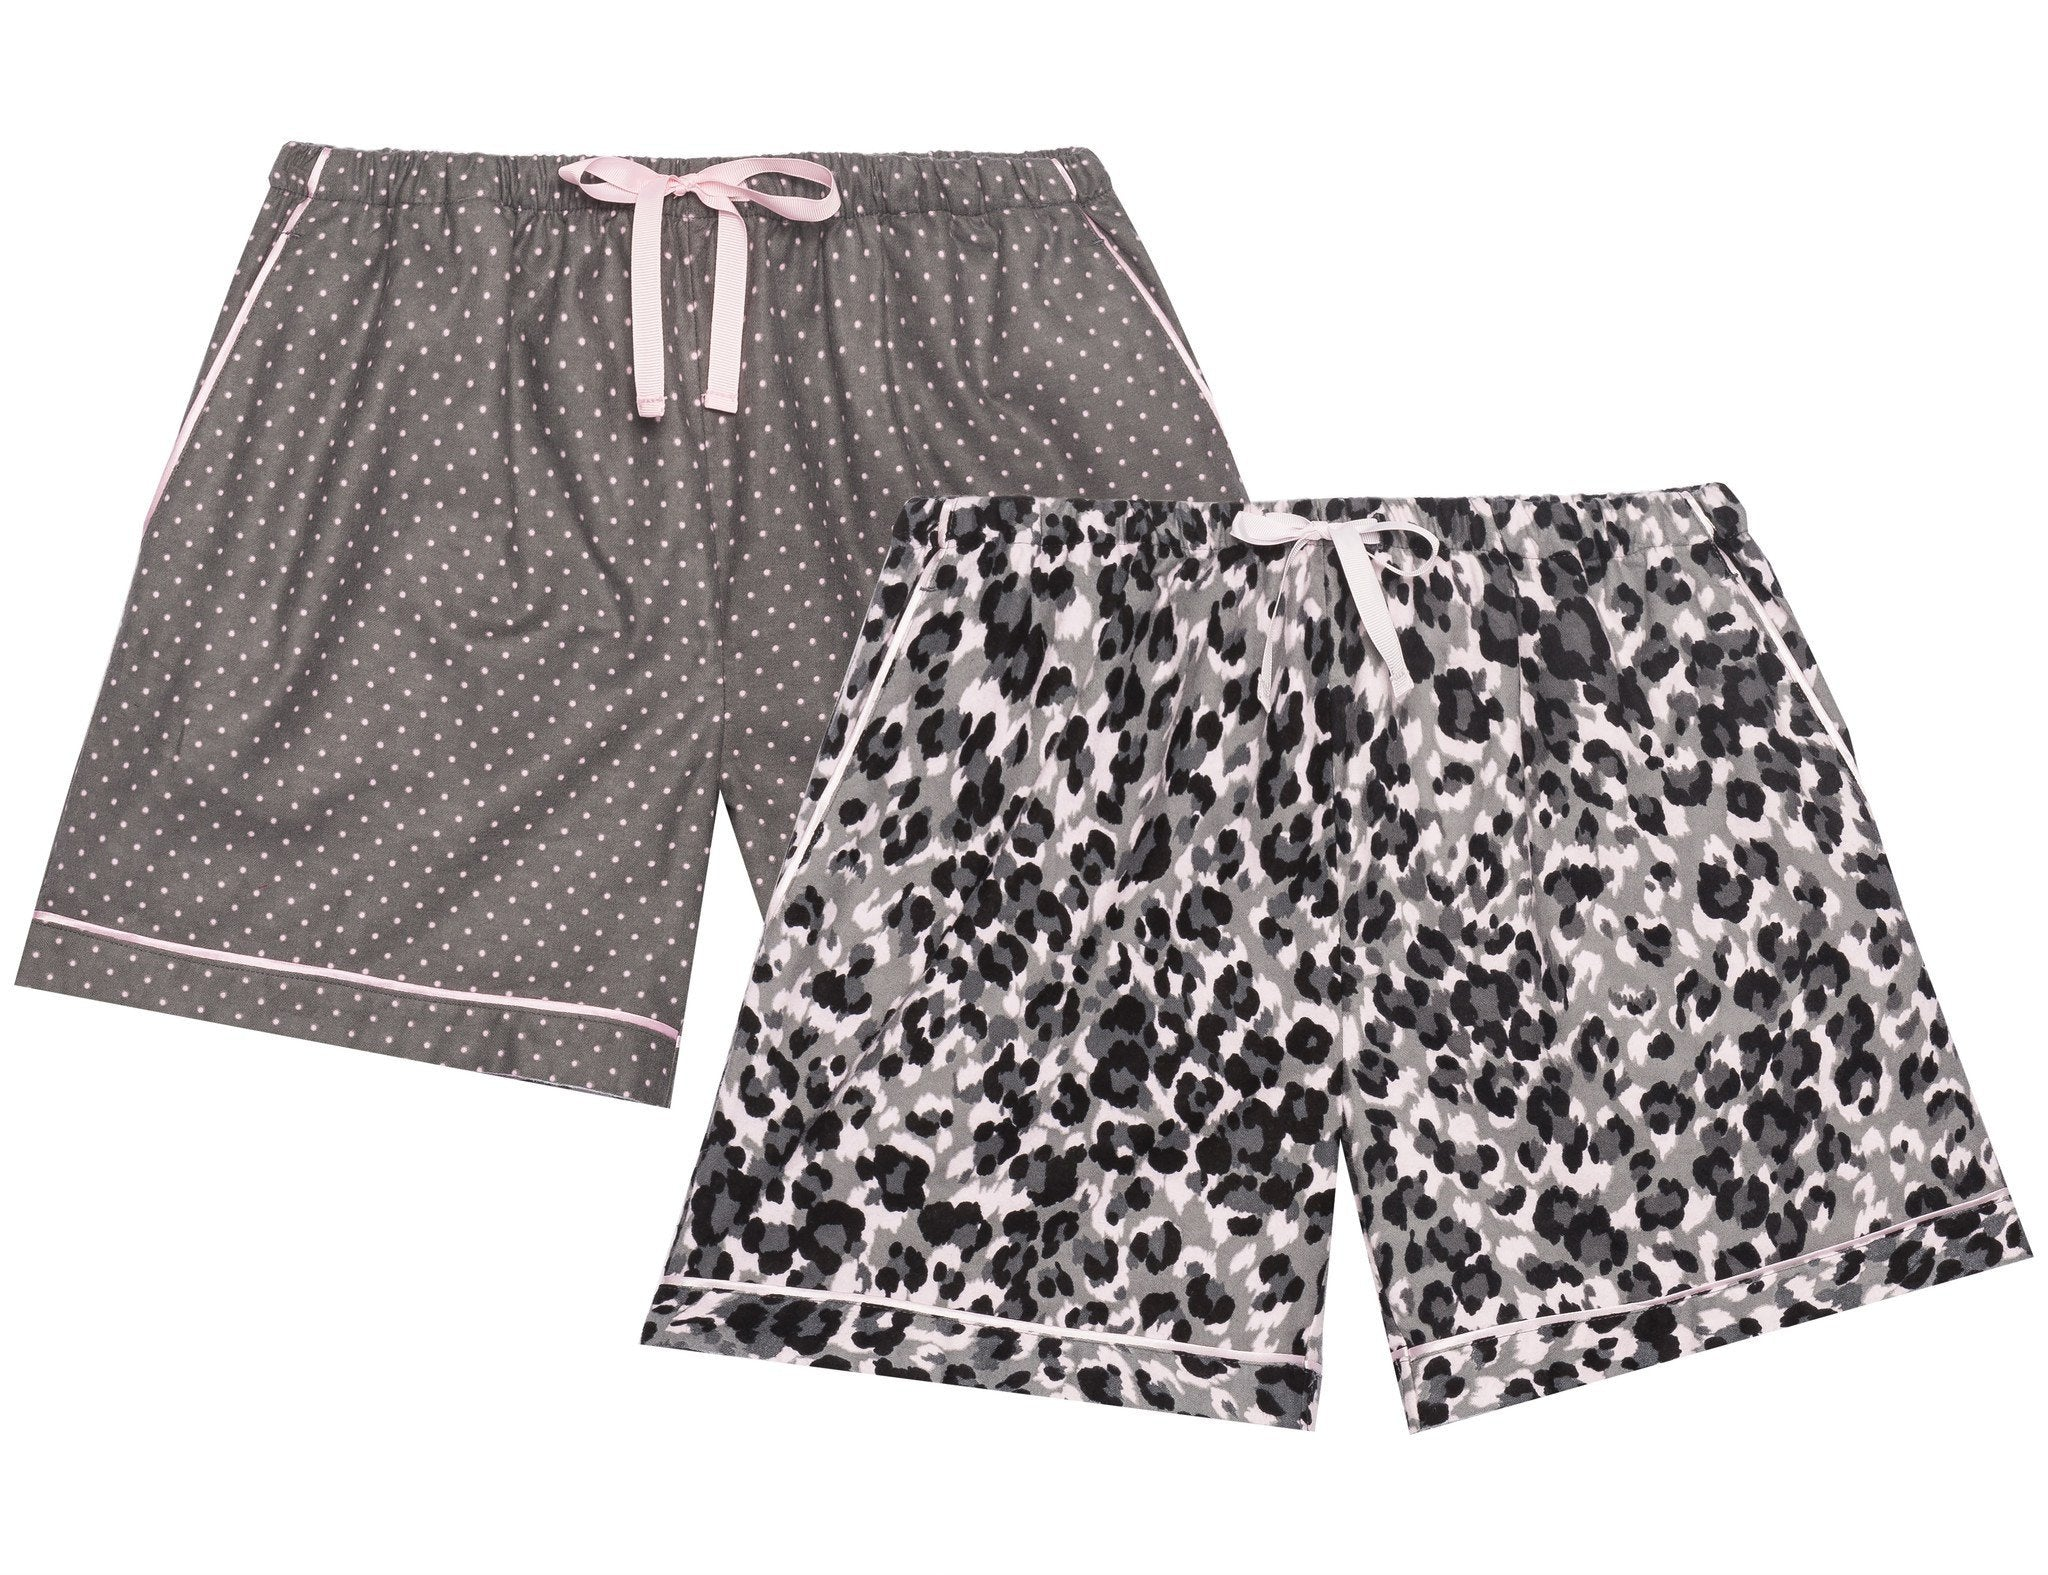 Women's Premium 100% Cotton Flannel Lounge Shorts 2-Pack - Leopard-Pin Dots Pink